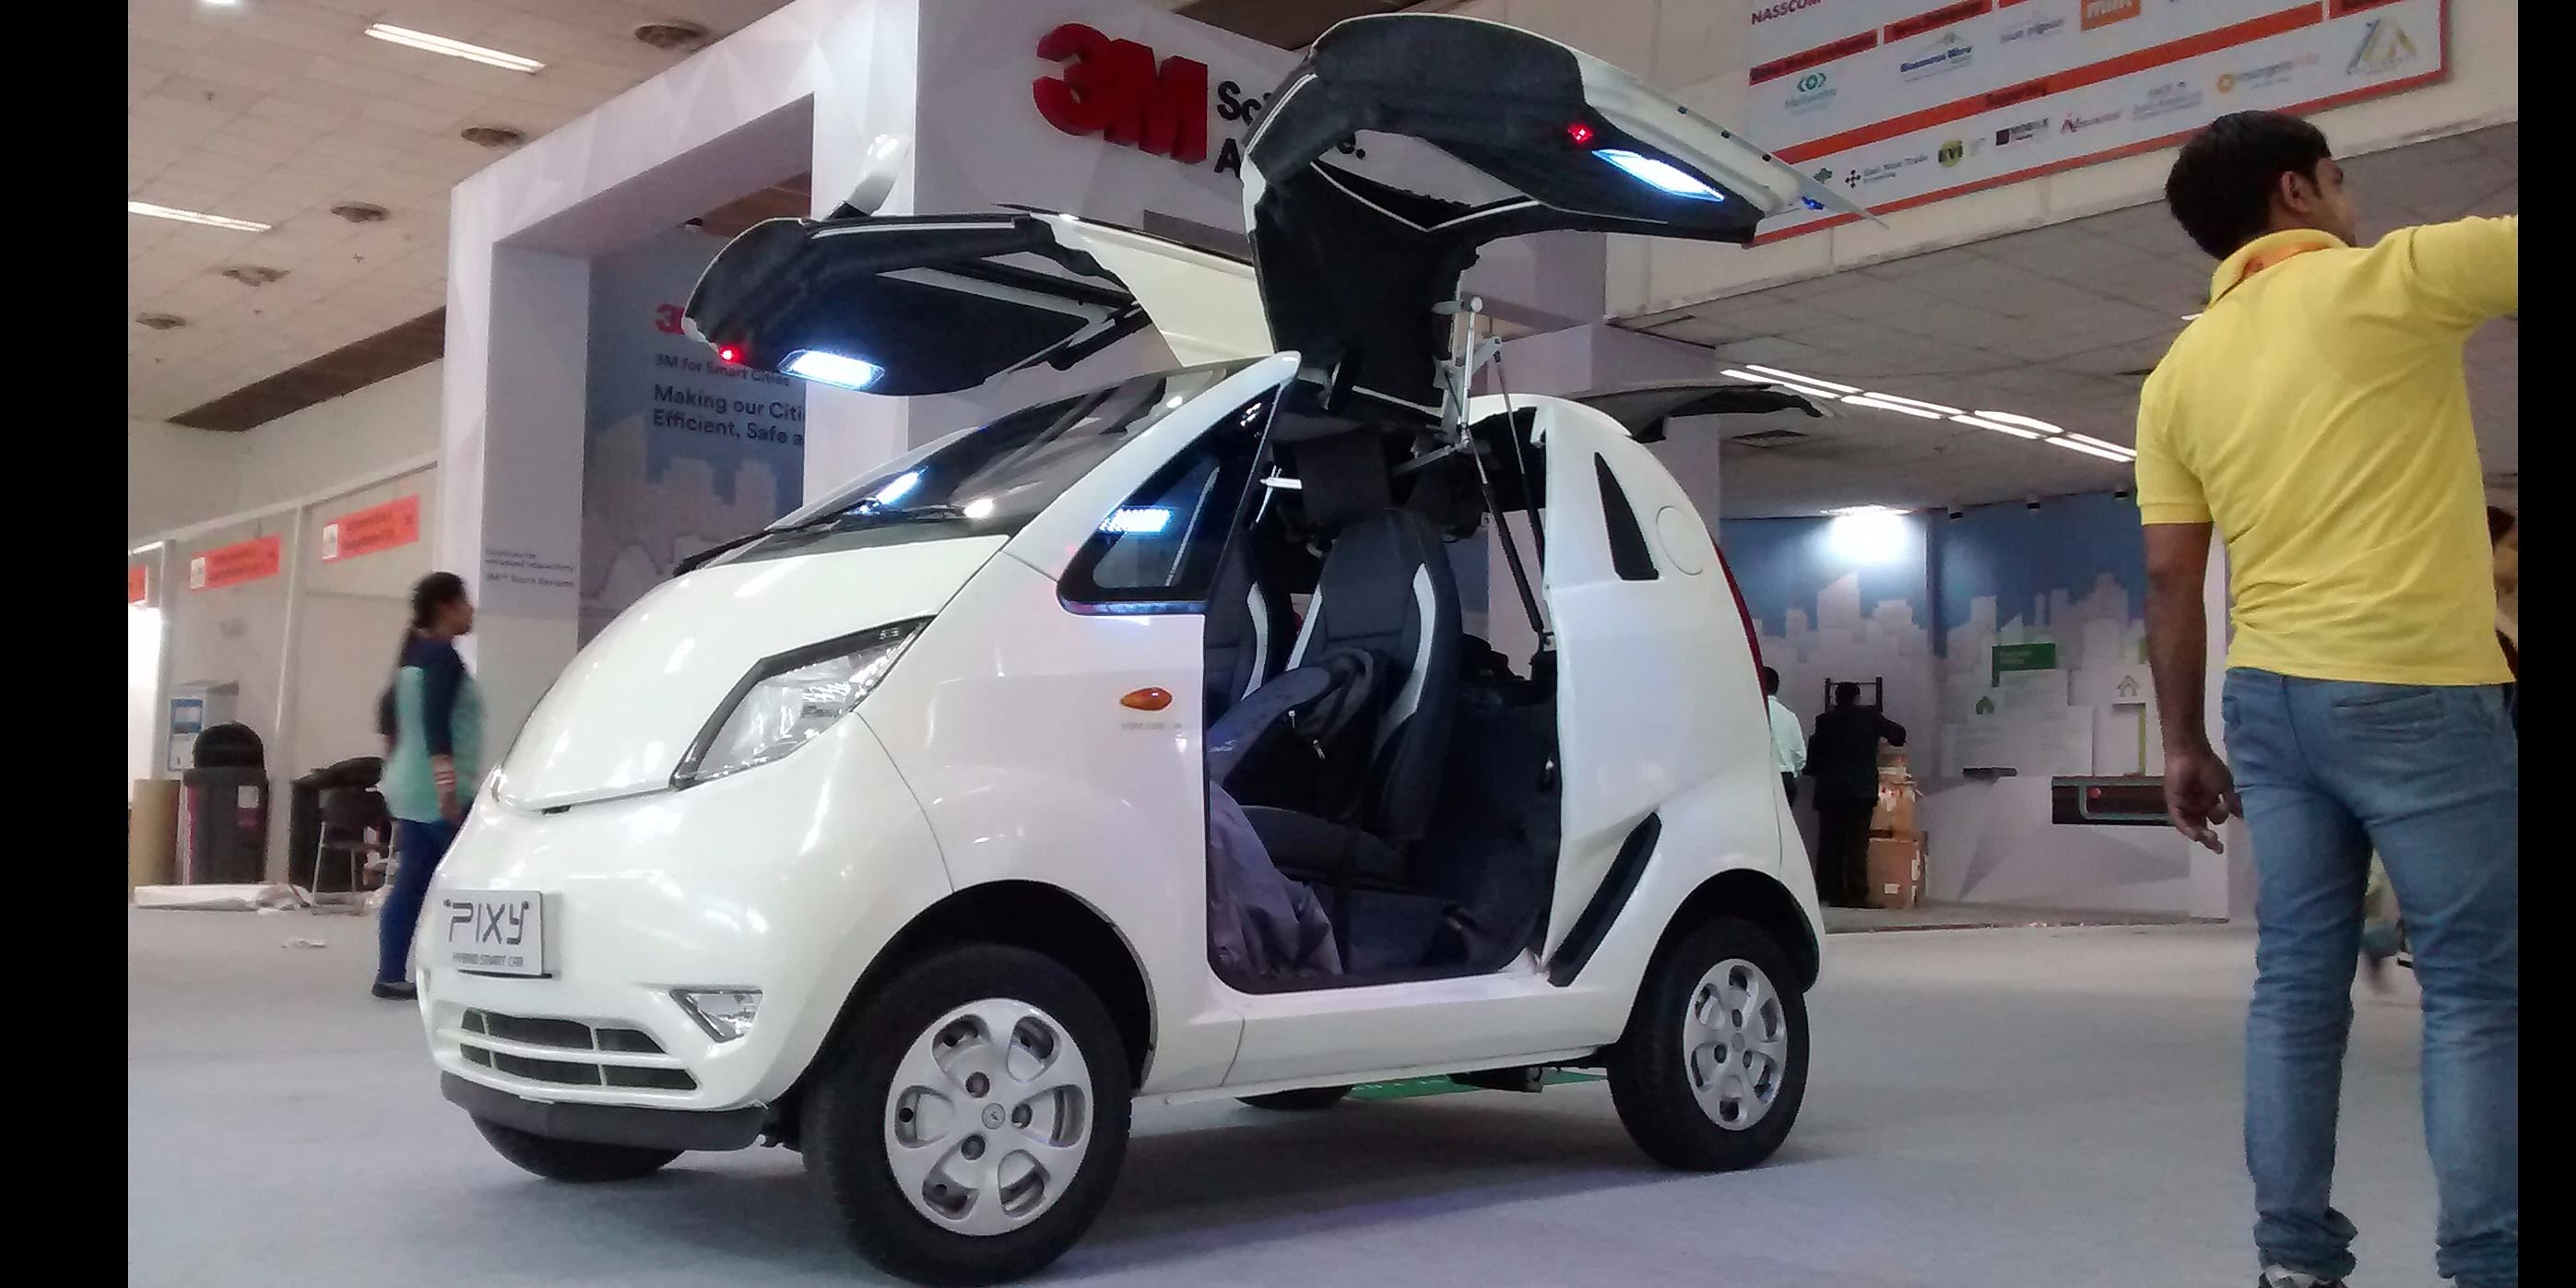 PIXY Smart Car at Smart Cities and Smart Transport Exhibition 2016, New Delhi, India